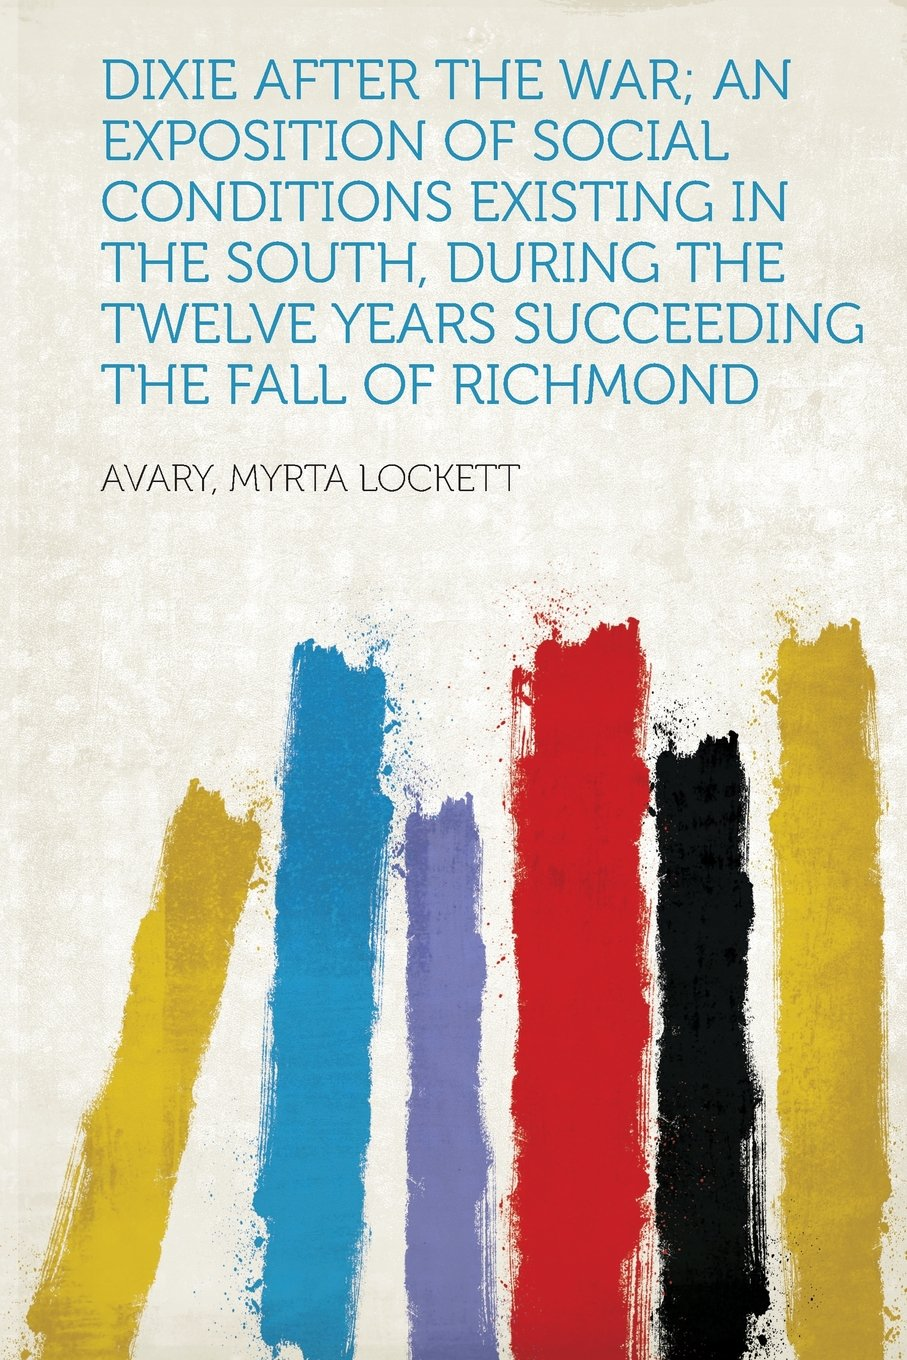 Download Dixie After the War; an Exposition of Social Conditions Existing in the South, During the Twelve Years Succeeding the Fall of Richmond pdf epub